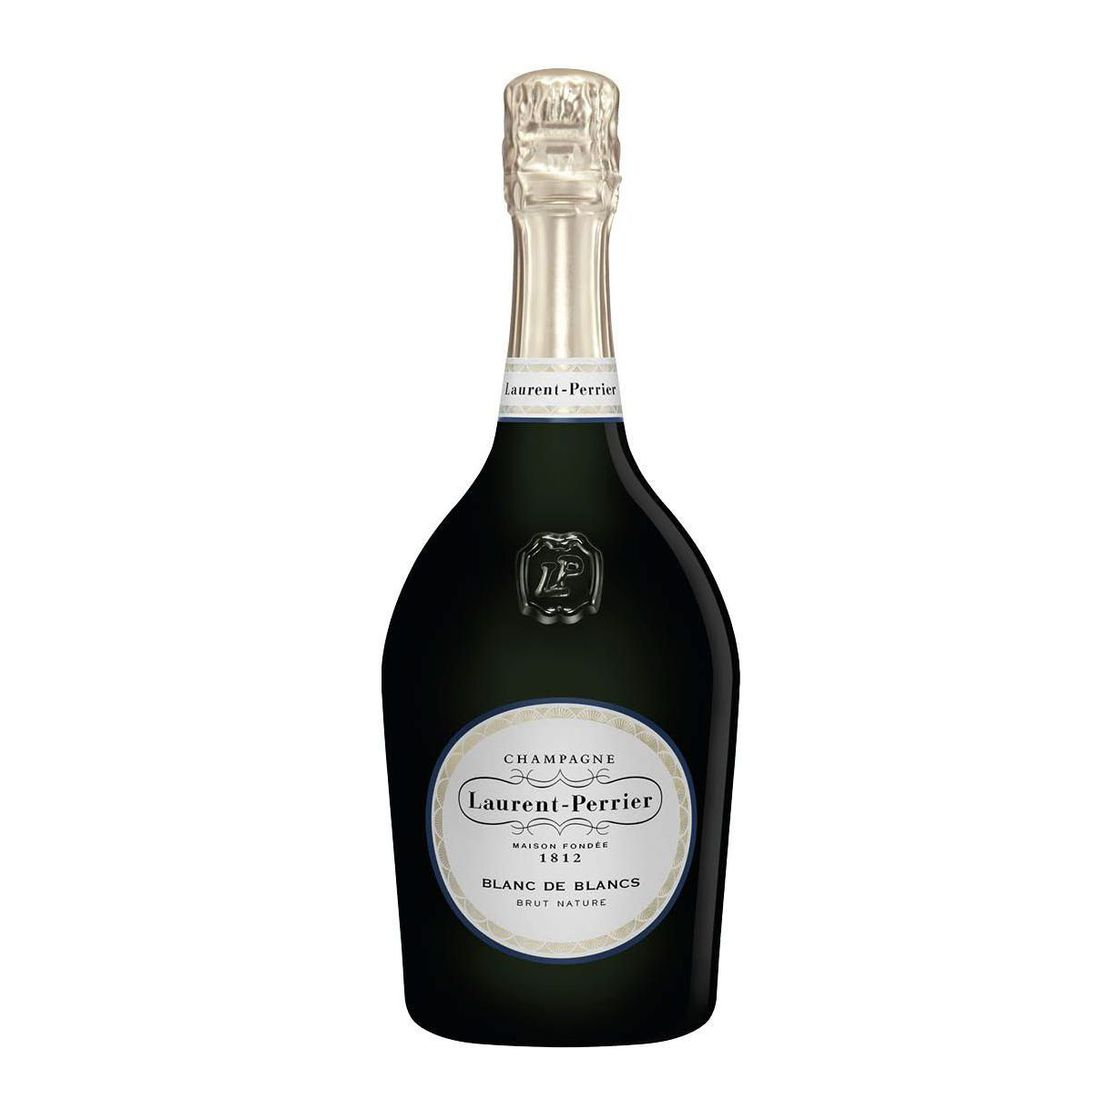 Blanc de Blancs Brut Nature Laurent-Perrier